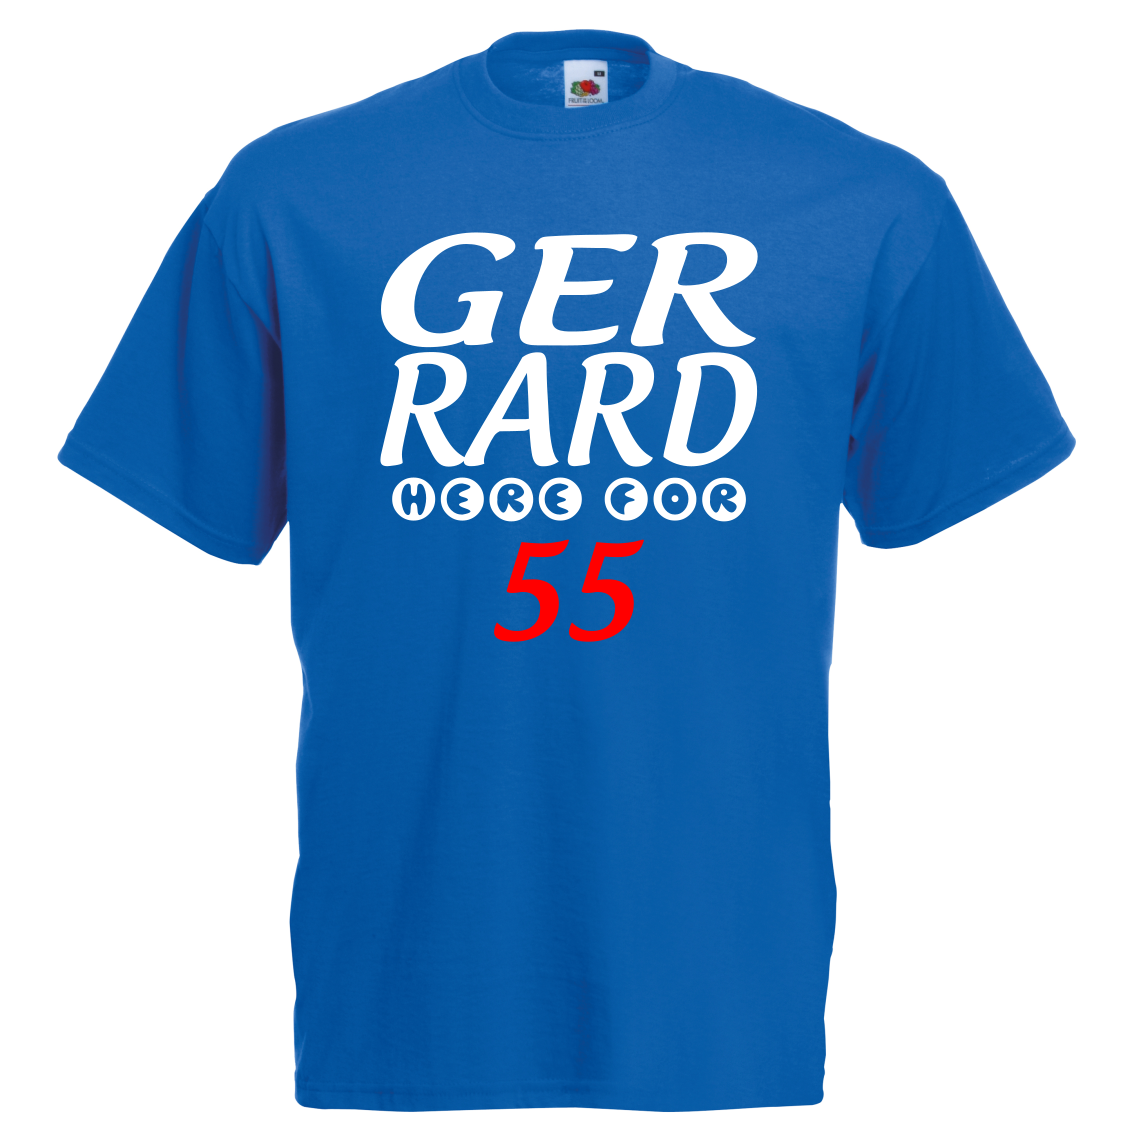 Steven Gerrard Going Here for <font><b>55</b></font> <font><b>T</b></font>-Shirt Glasgow Rangers GERS RFC Football Cool Casual pride <font><b>t</b></font> shirt men Unisex New Fashion image